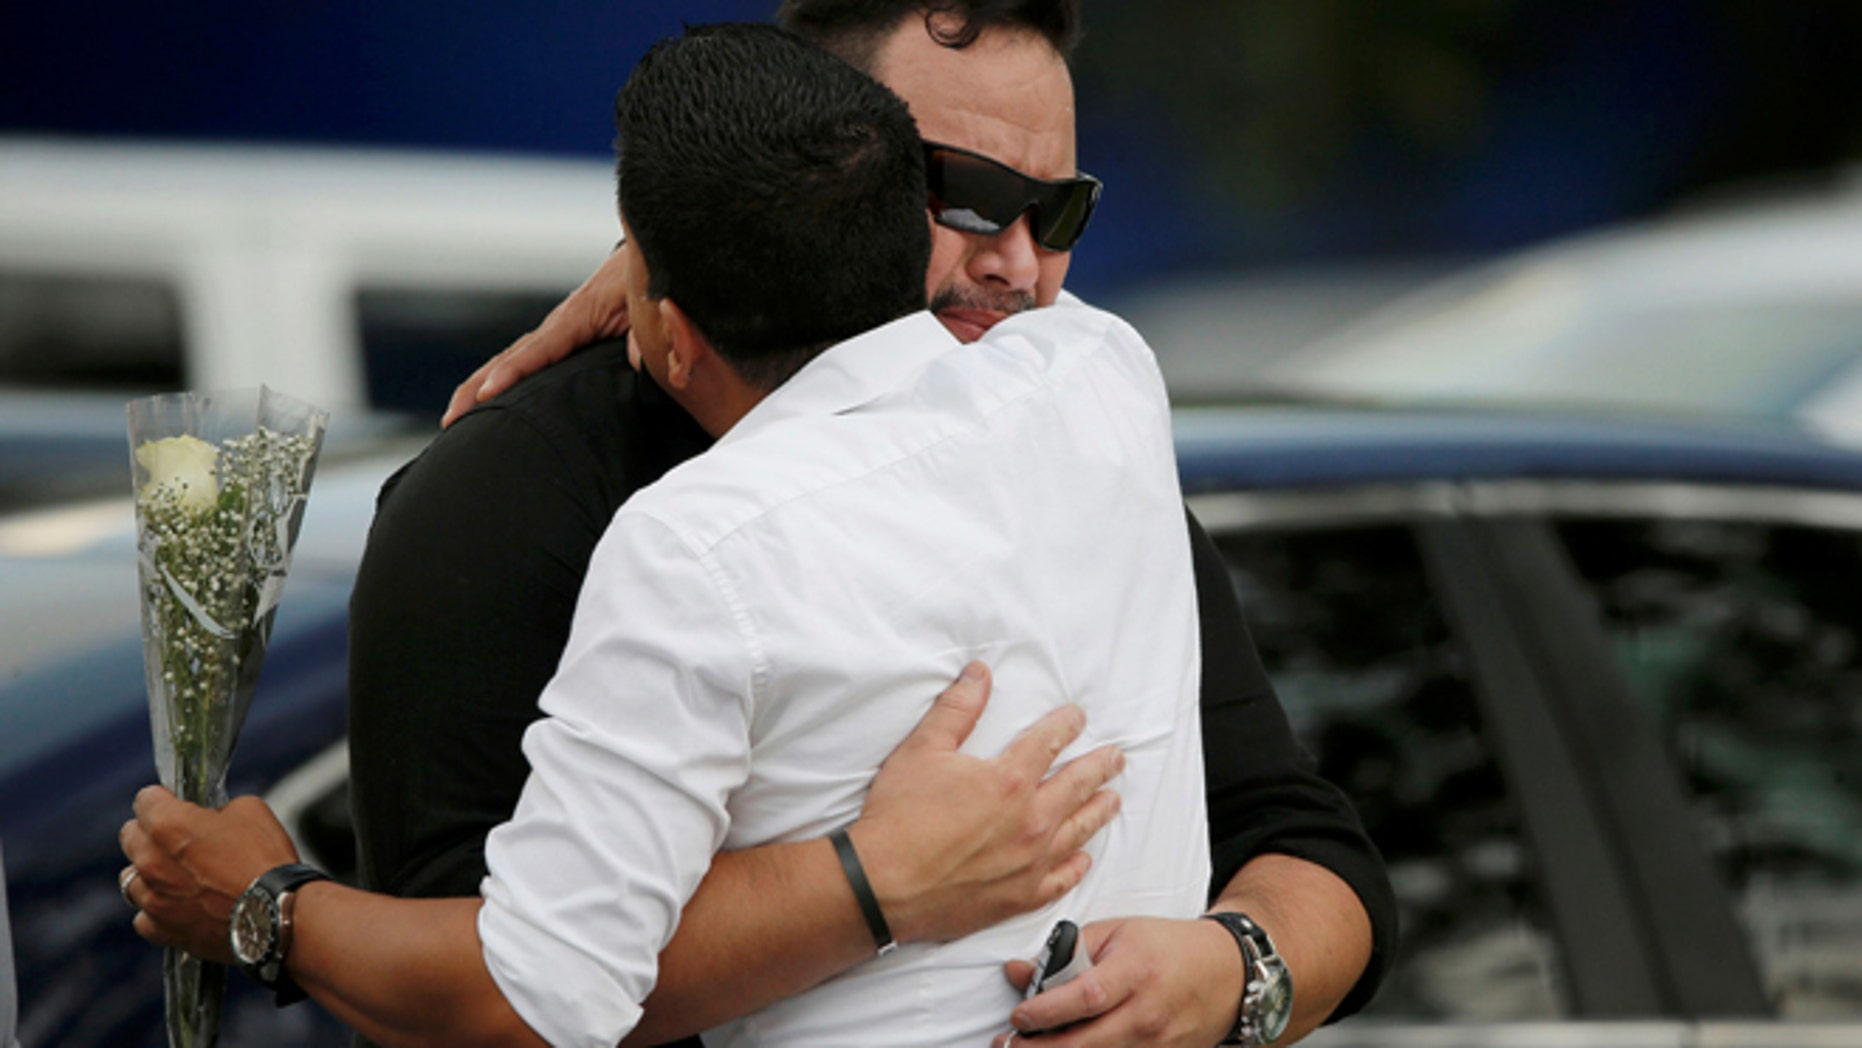 Mourners embrace outside the wake for Pulse shooting victim Javier Jorge Reyes in Orlando, Florida, U.S. June 15, 2016